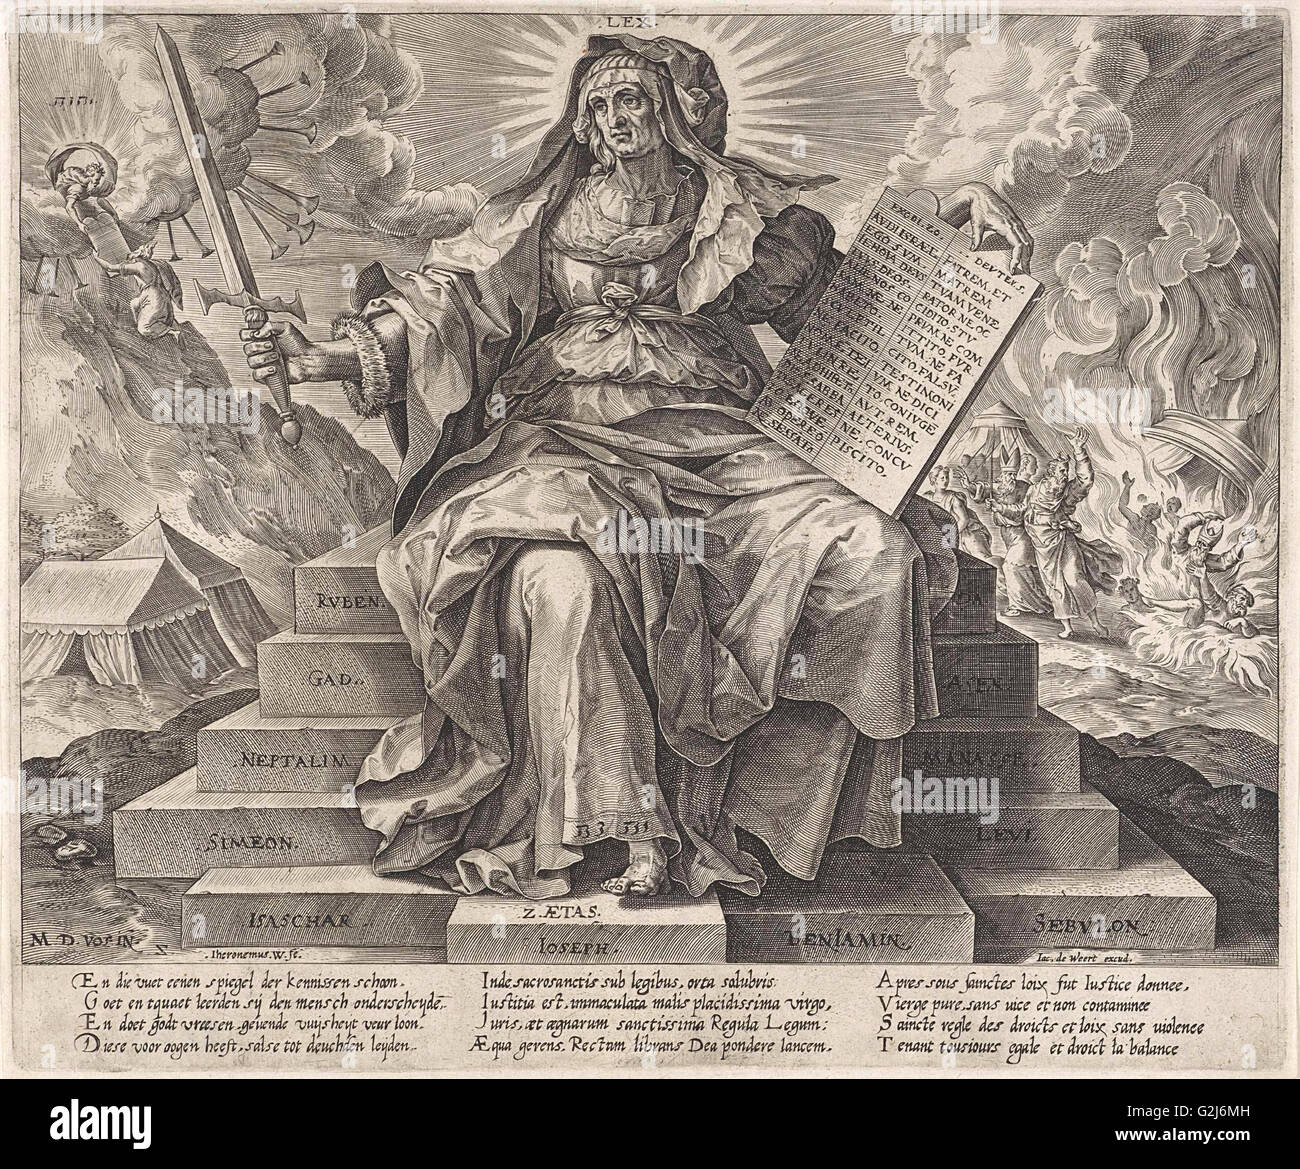 De Spiegel Vof.The Silver Age The Law Of The Old Testament Hieronymus Wierix